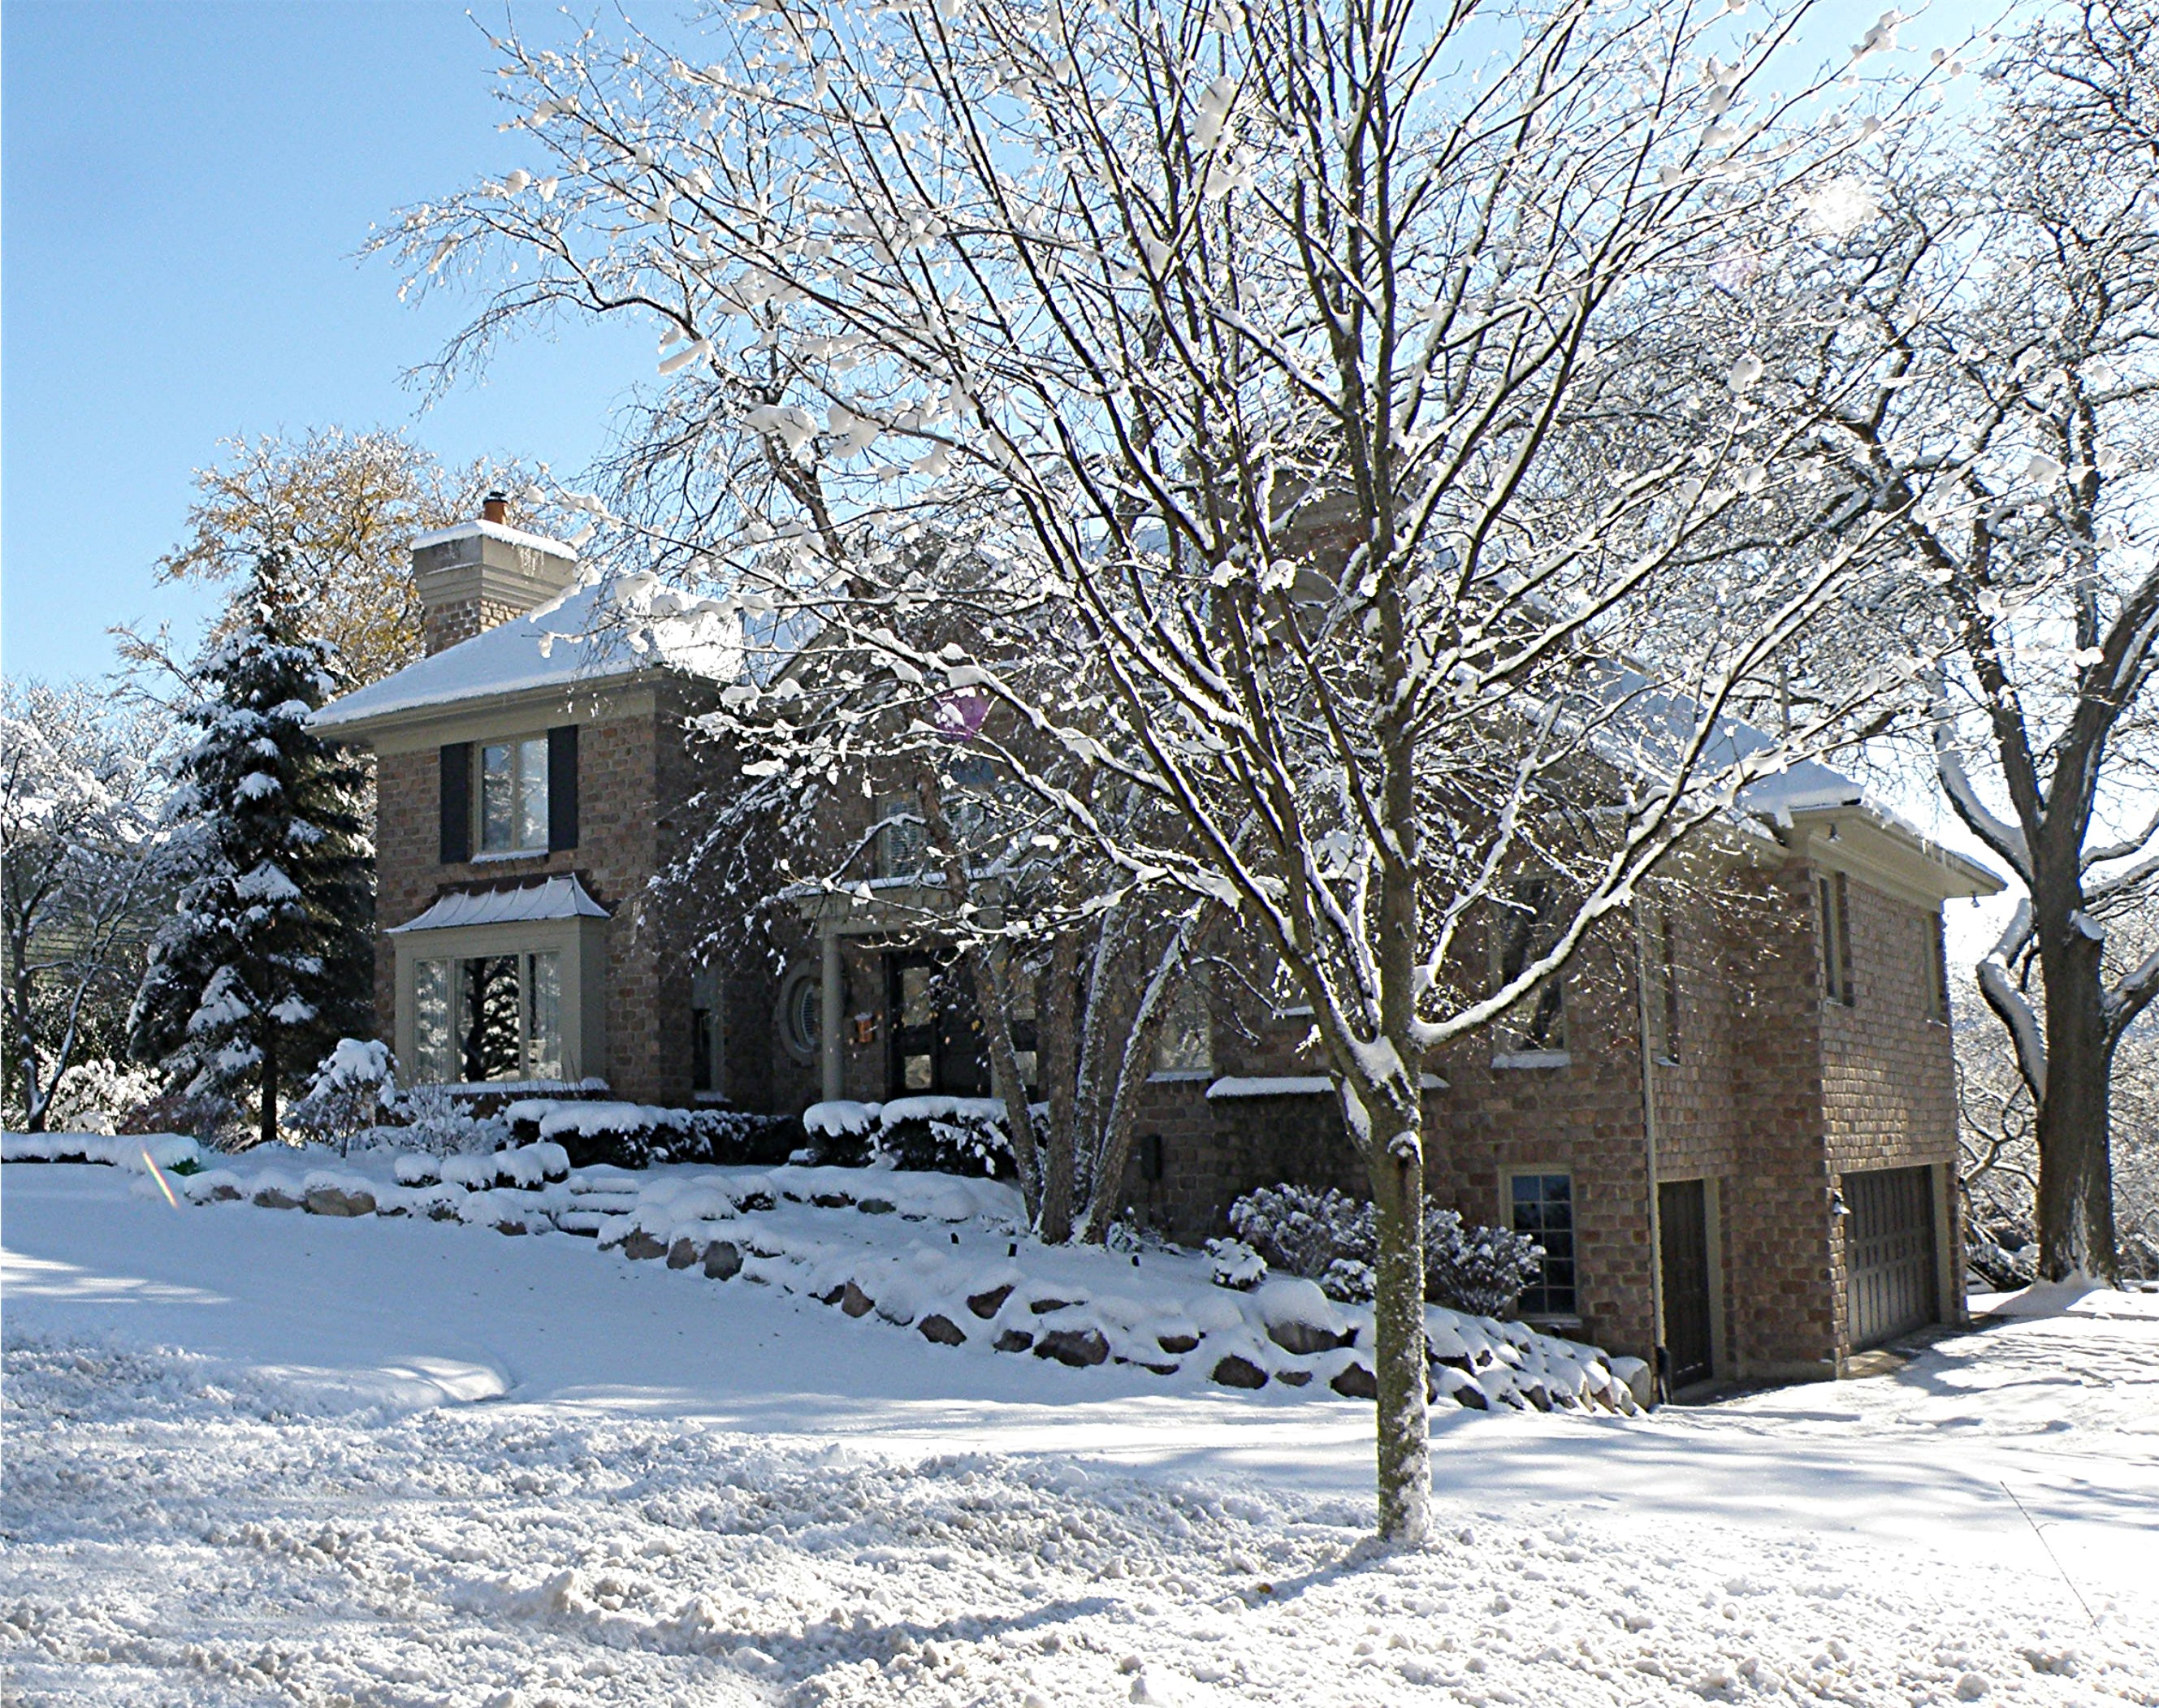 Single Family Home for Sale at 4 N Madison 4 N. Madison Hinsdale, Illinois 60521 United States